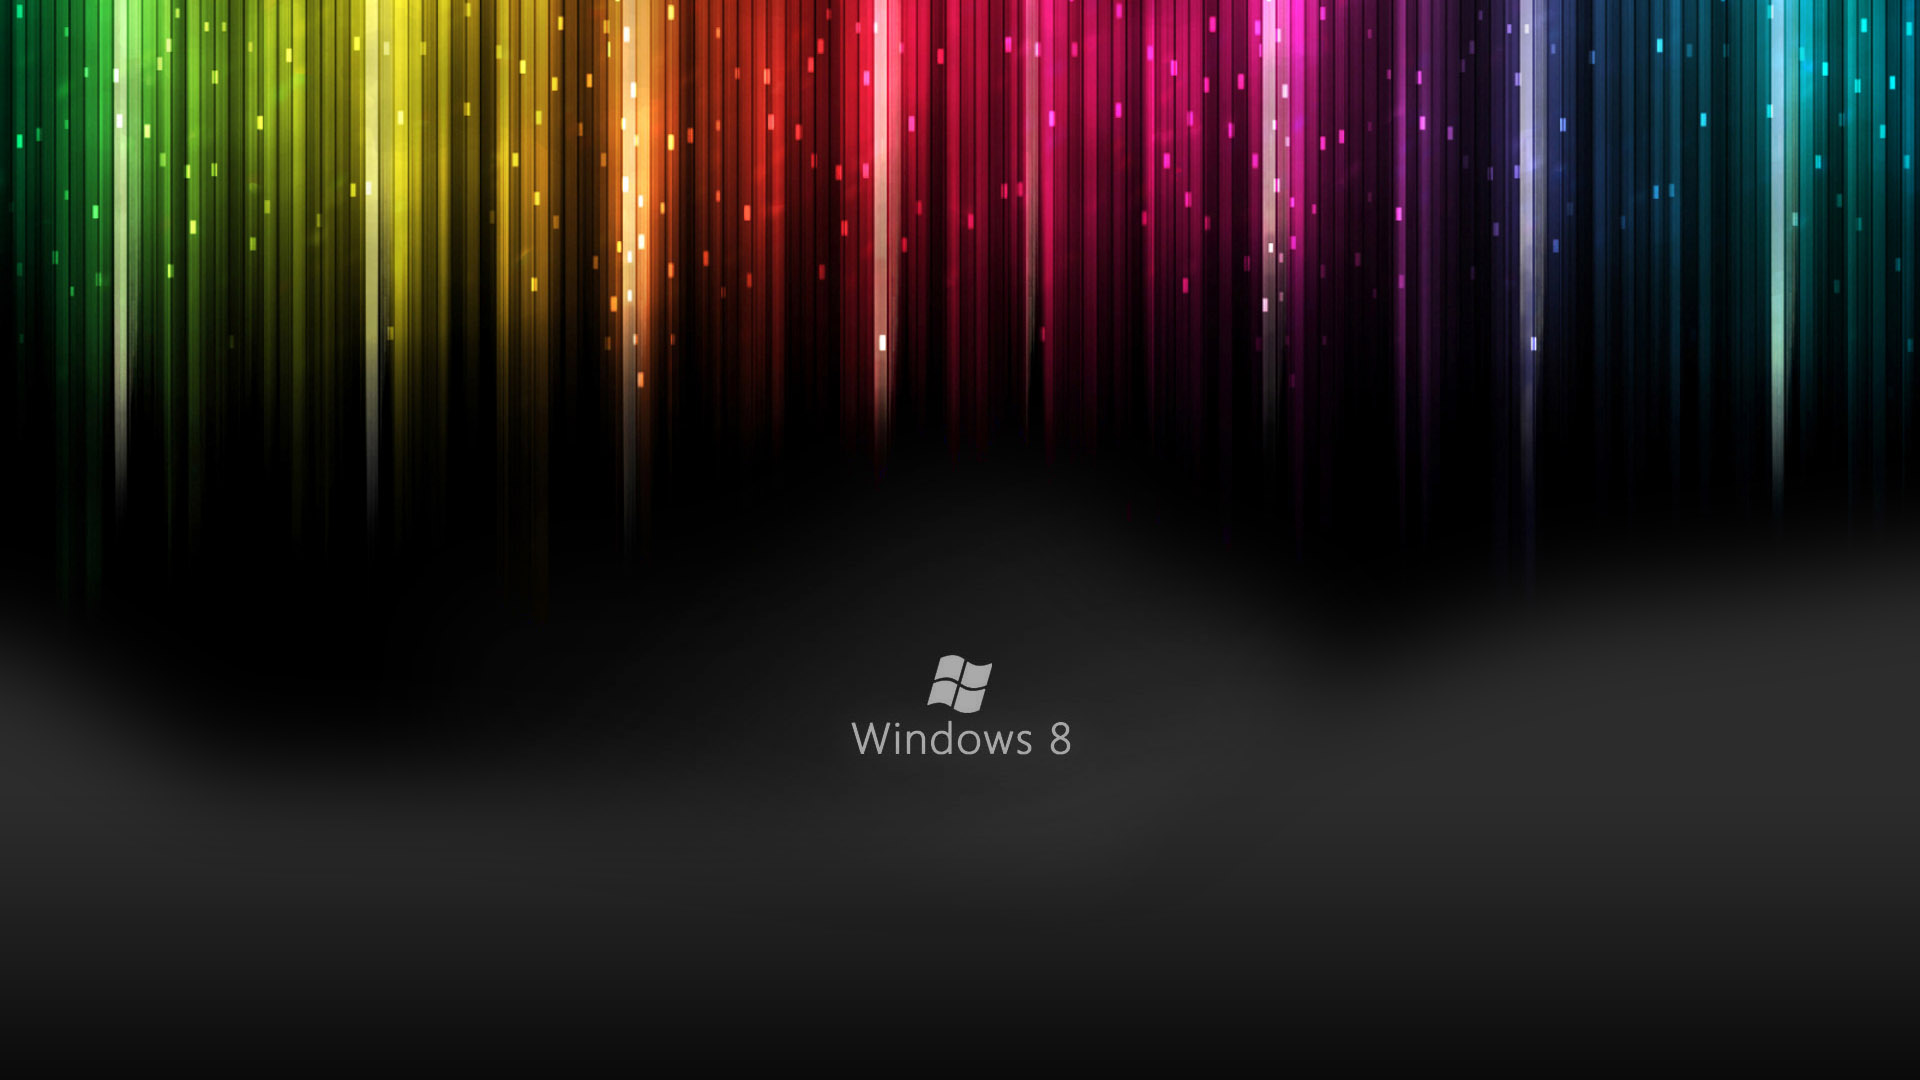 Windows 8 Live Wallpapers HD Wallpaper of Windows   hdwallpaper2013 1920x1080